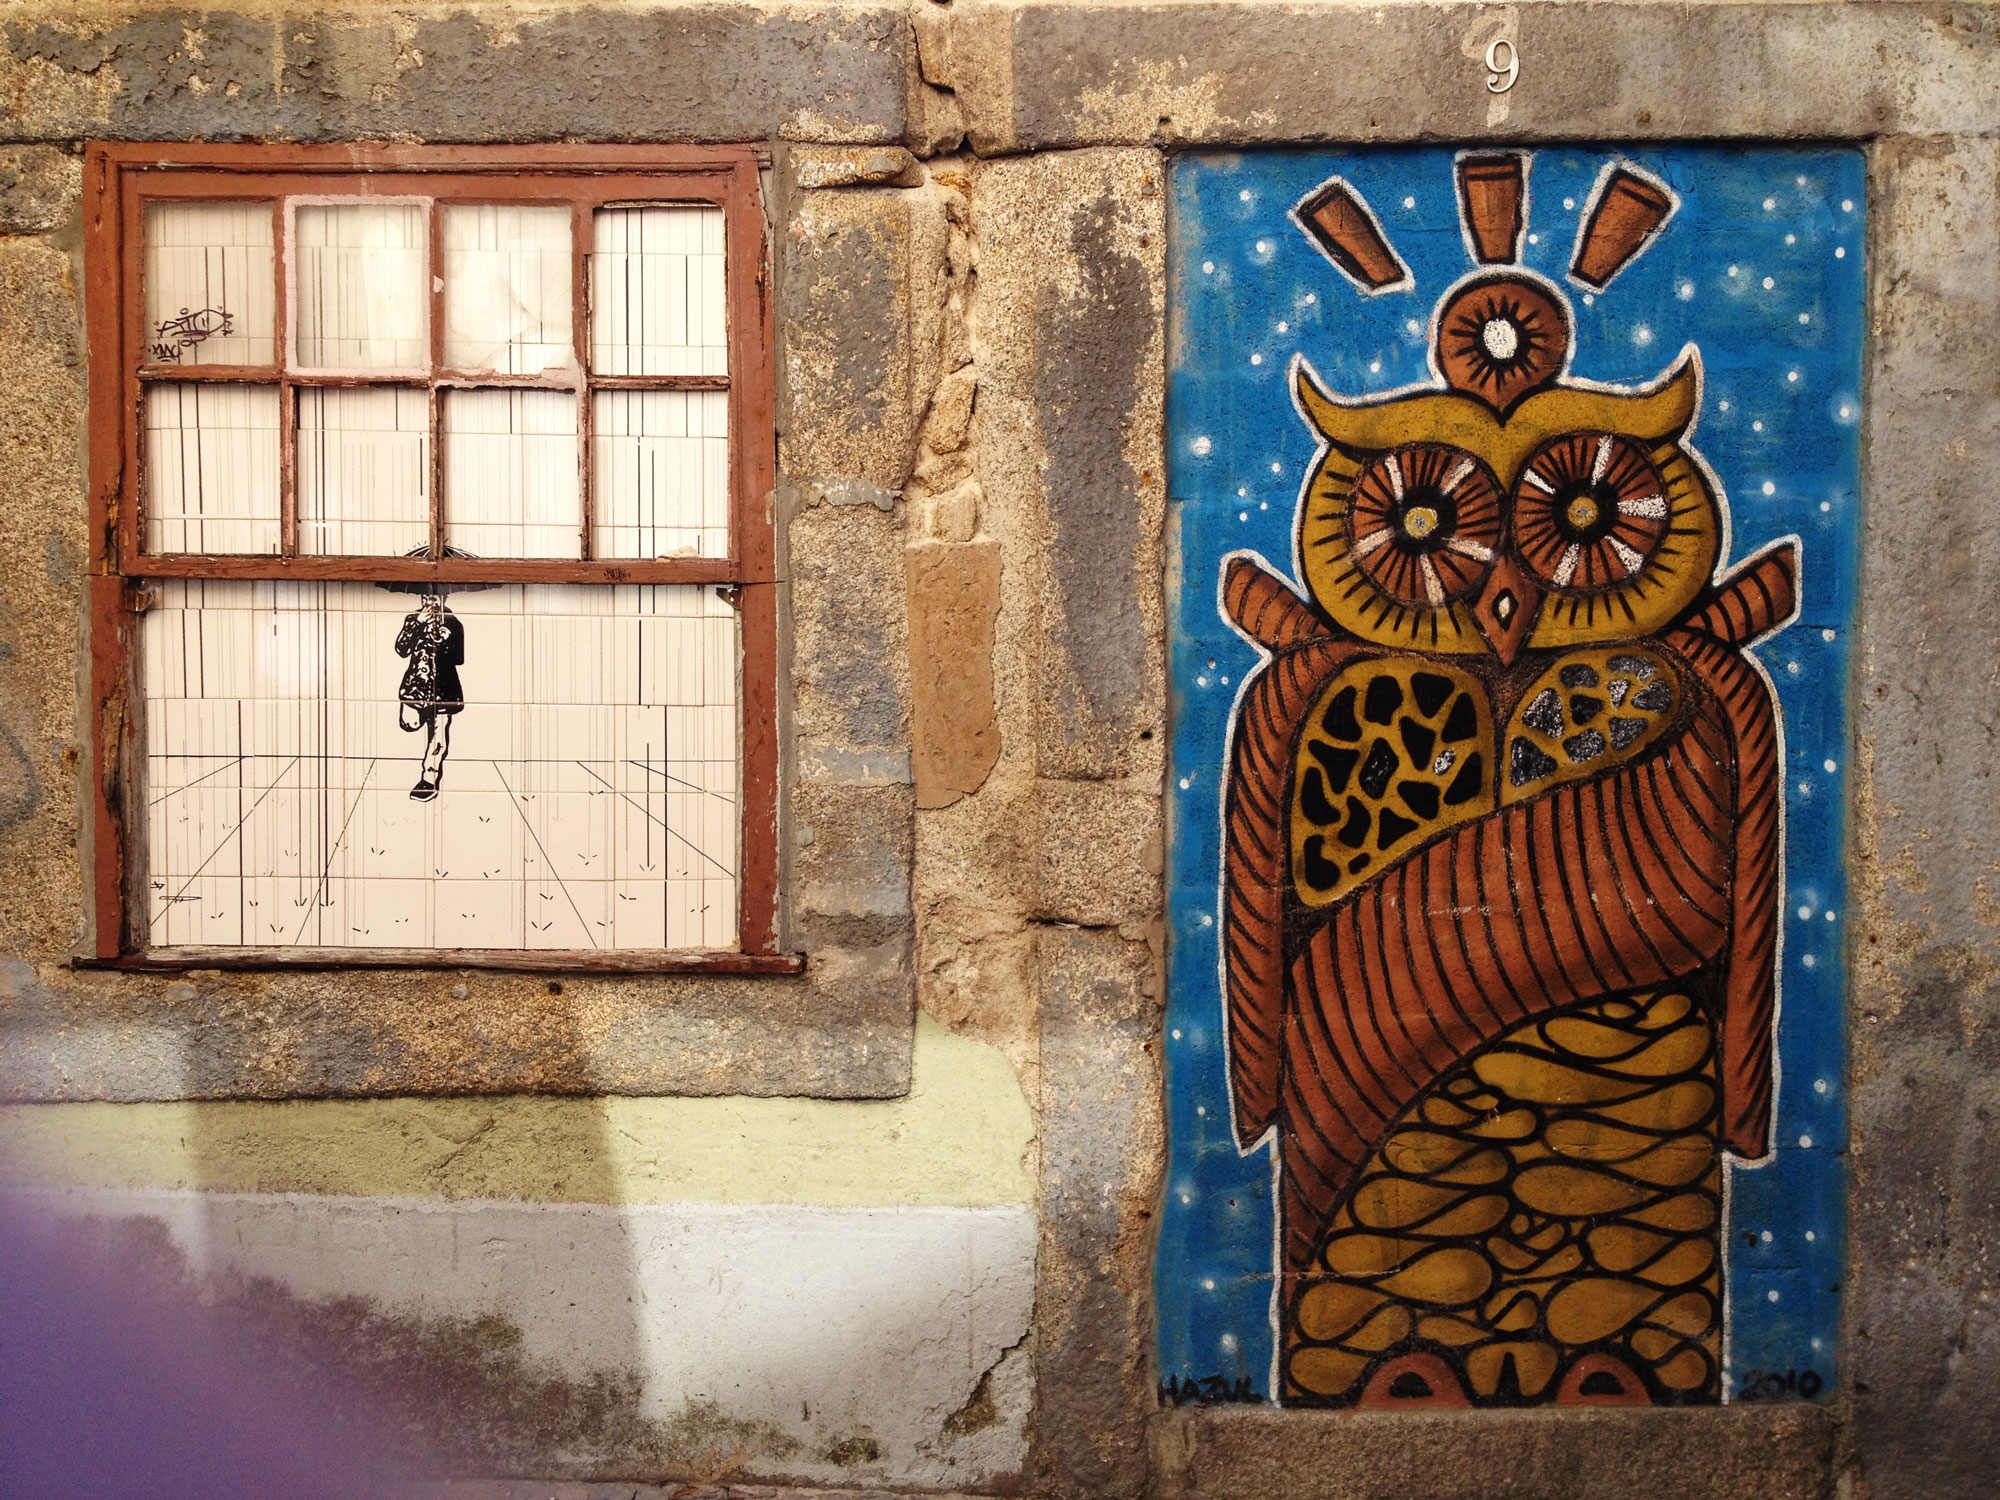 Street artists like Hazul, use abandoned building's door frames as a canvas to murals